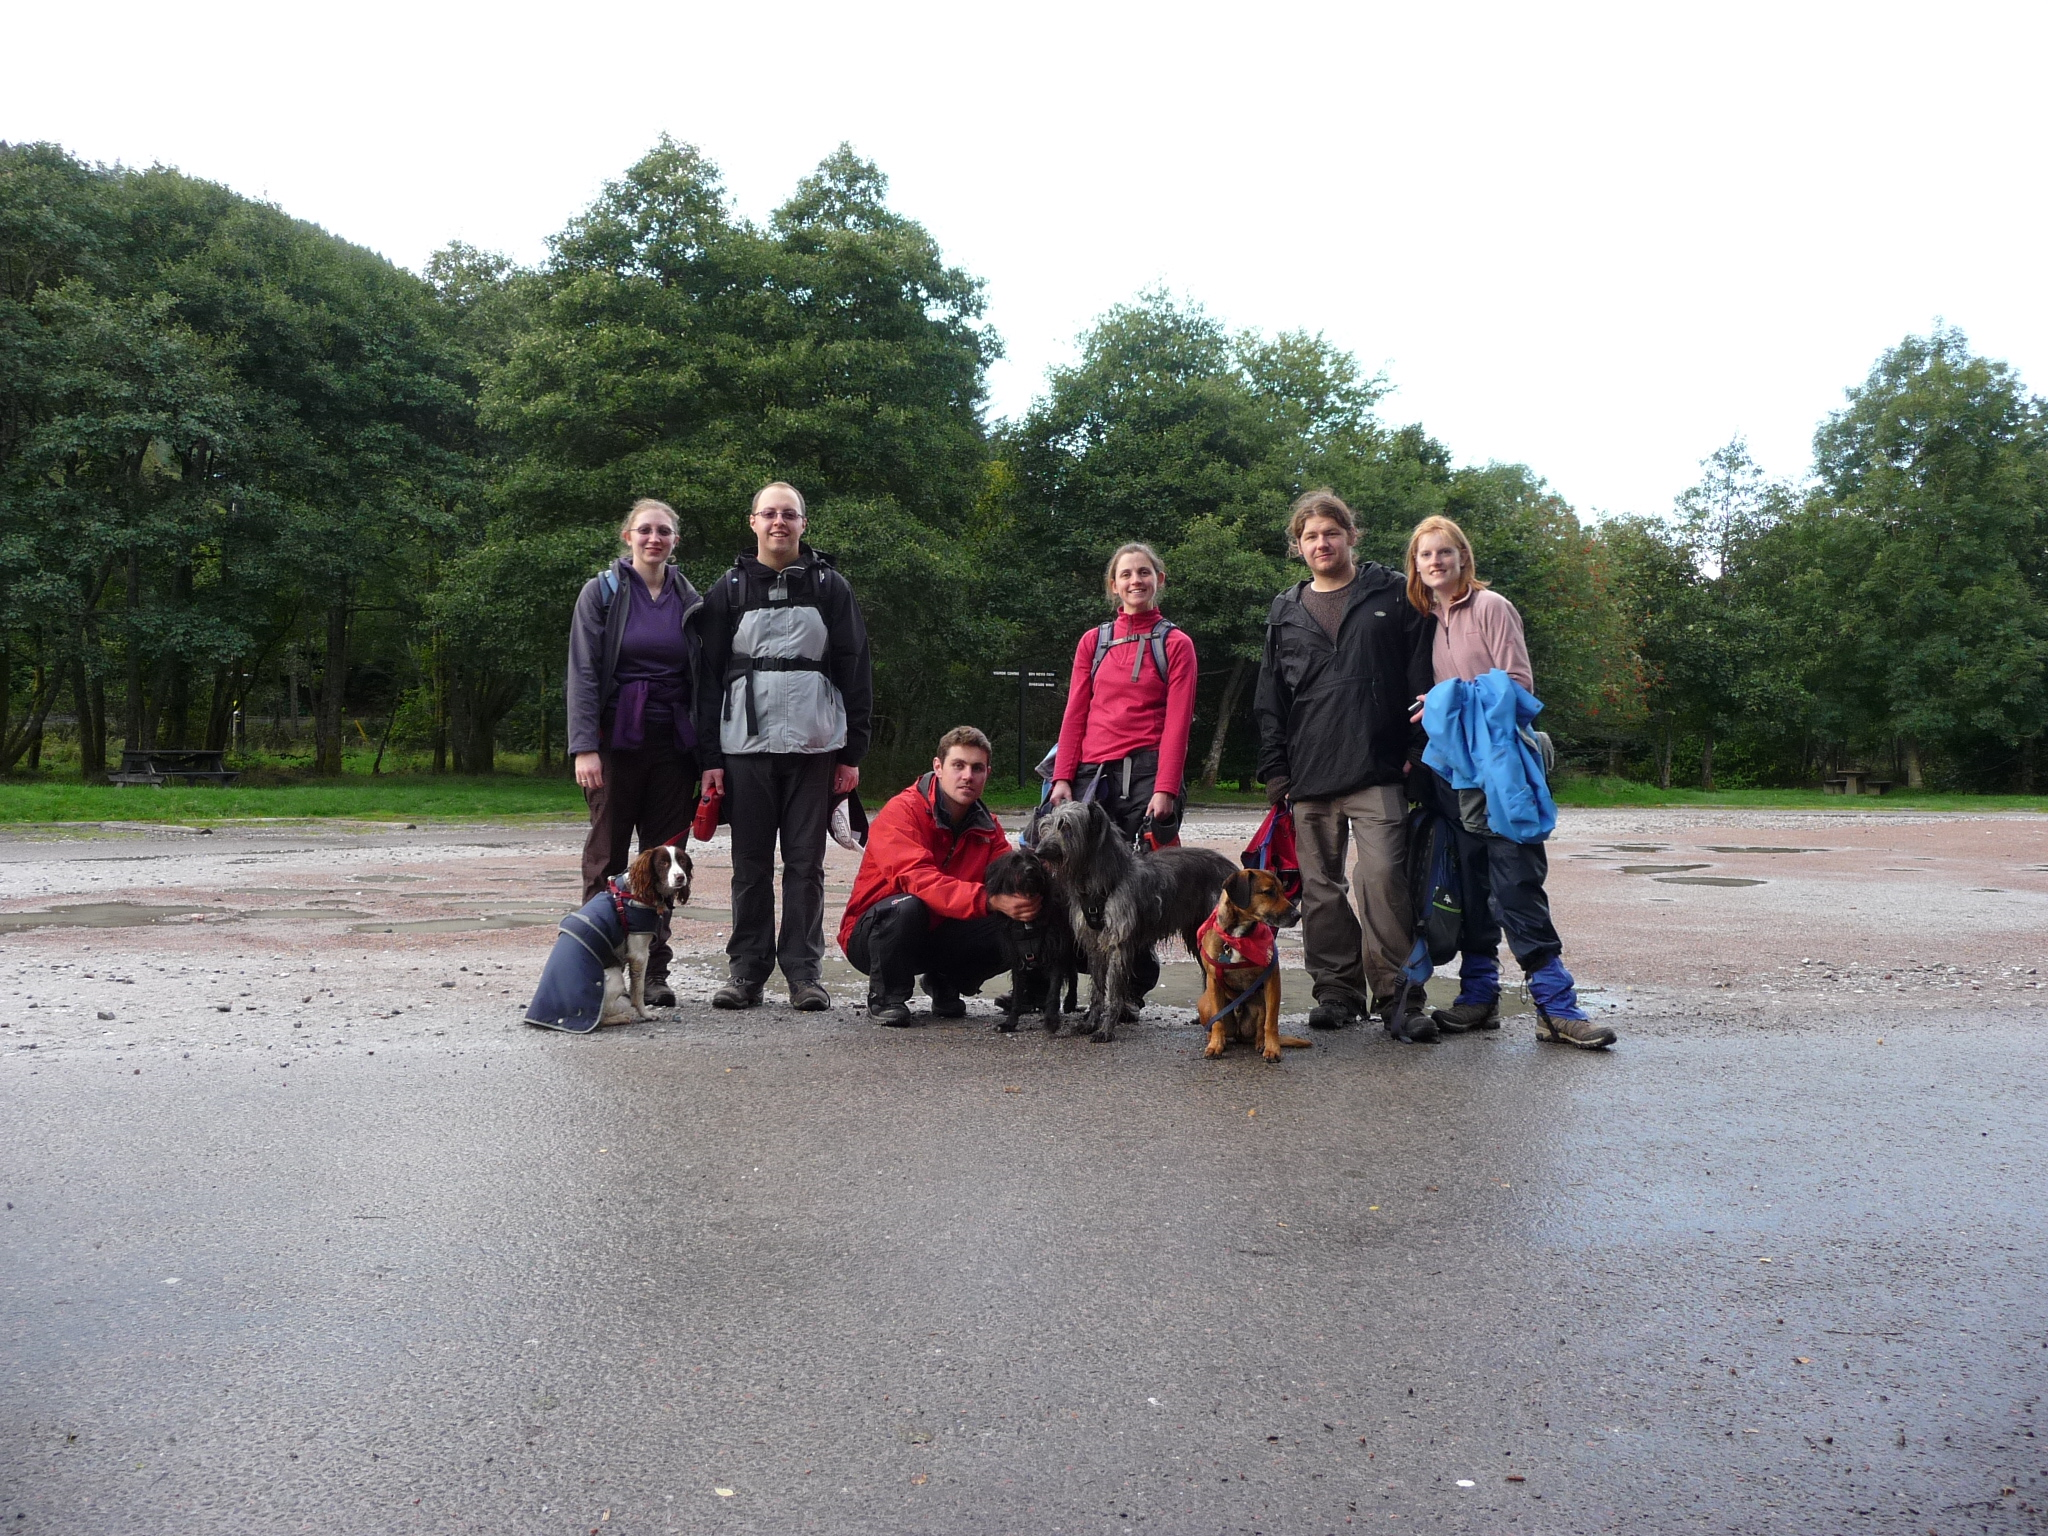 The Writing Man, his friends and their dogs celebrate their achievement at the Ben Nevis visitor centre car park